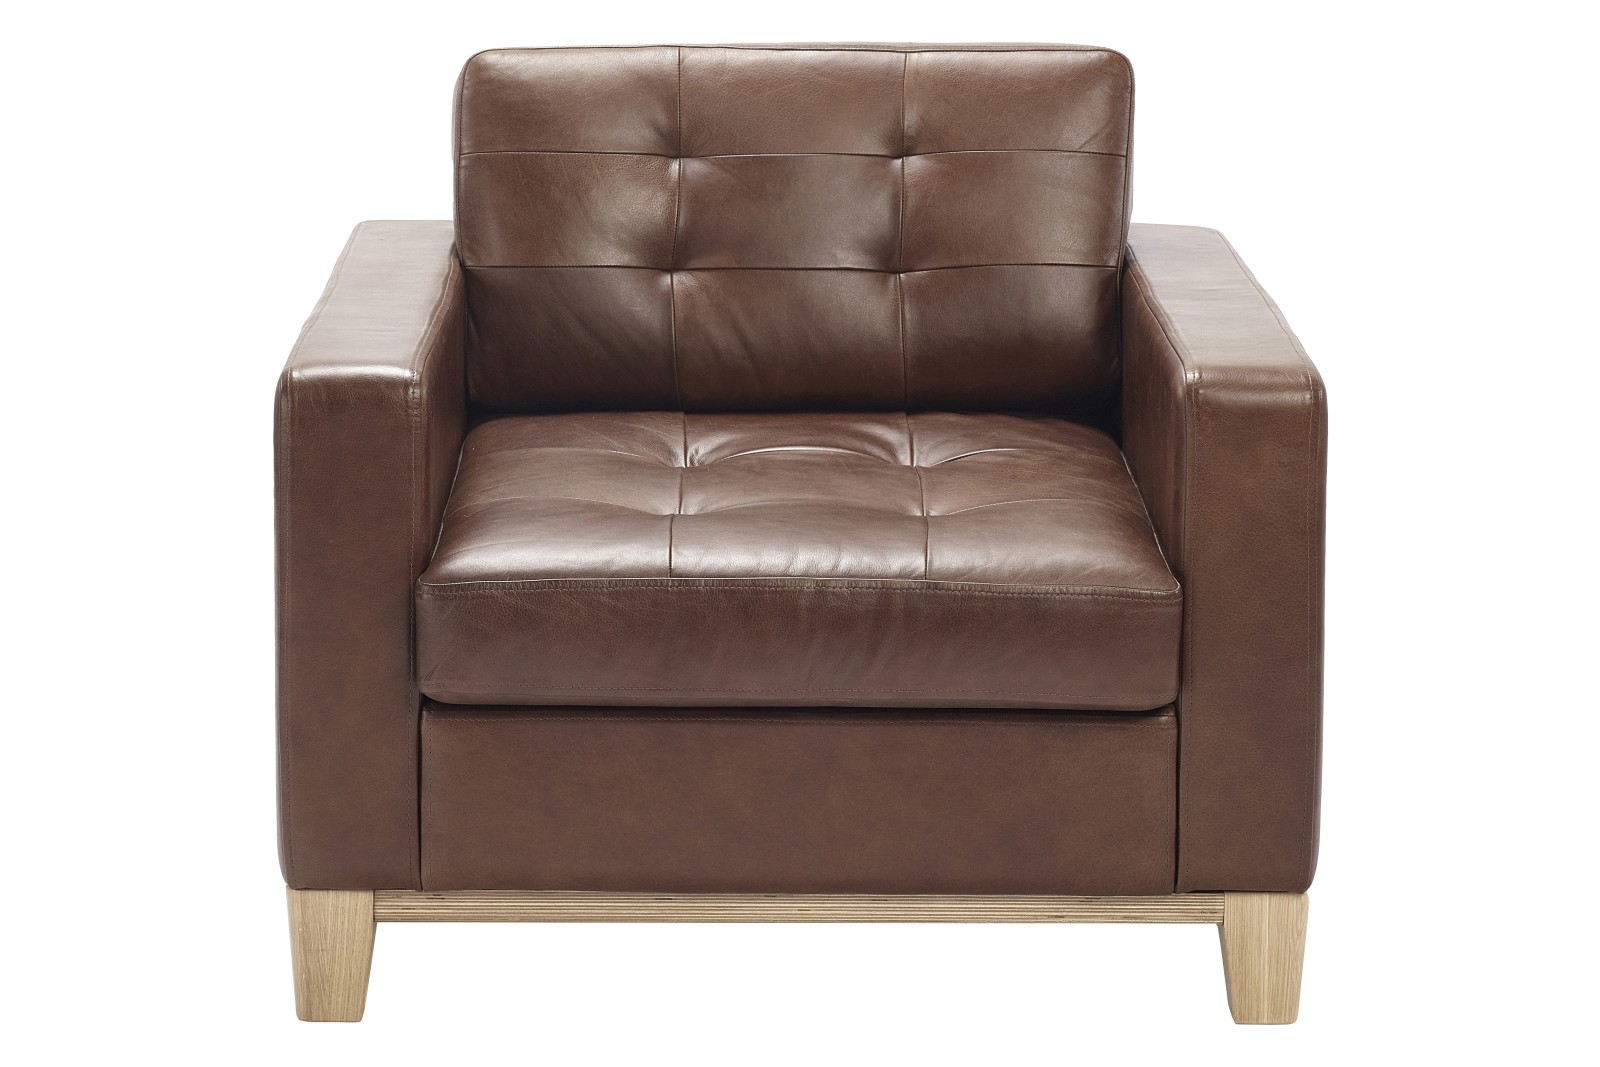 Check Armchair Wooden Base Pricegrp. Style, Without, Clear Lacquered